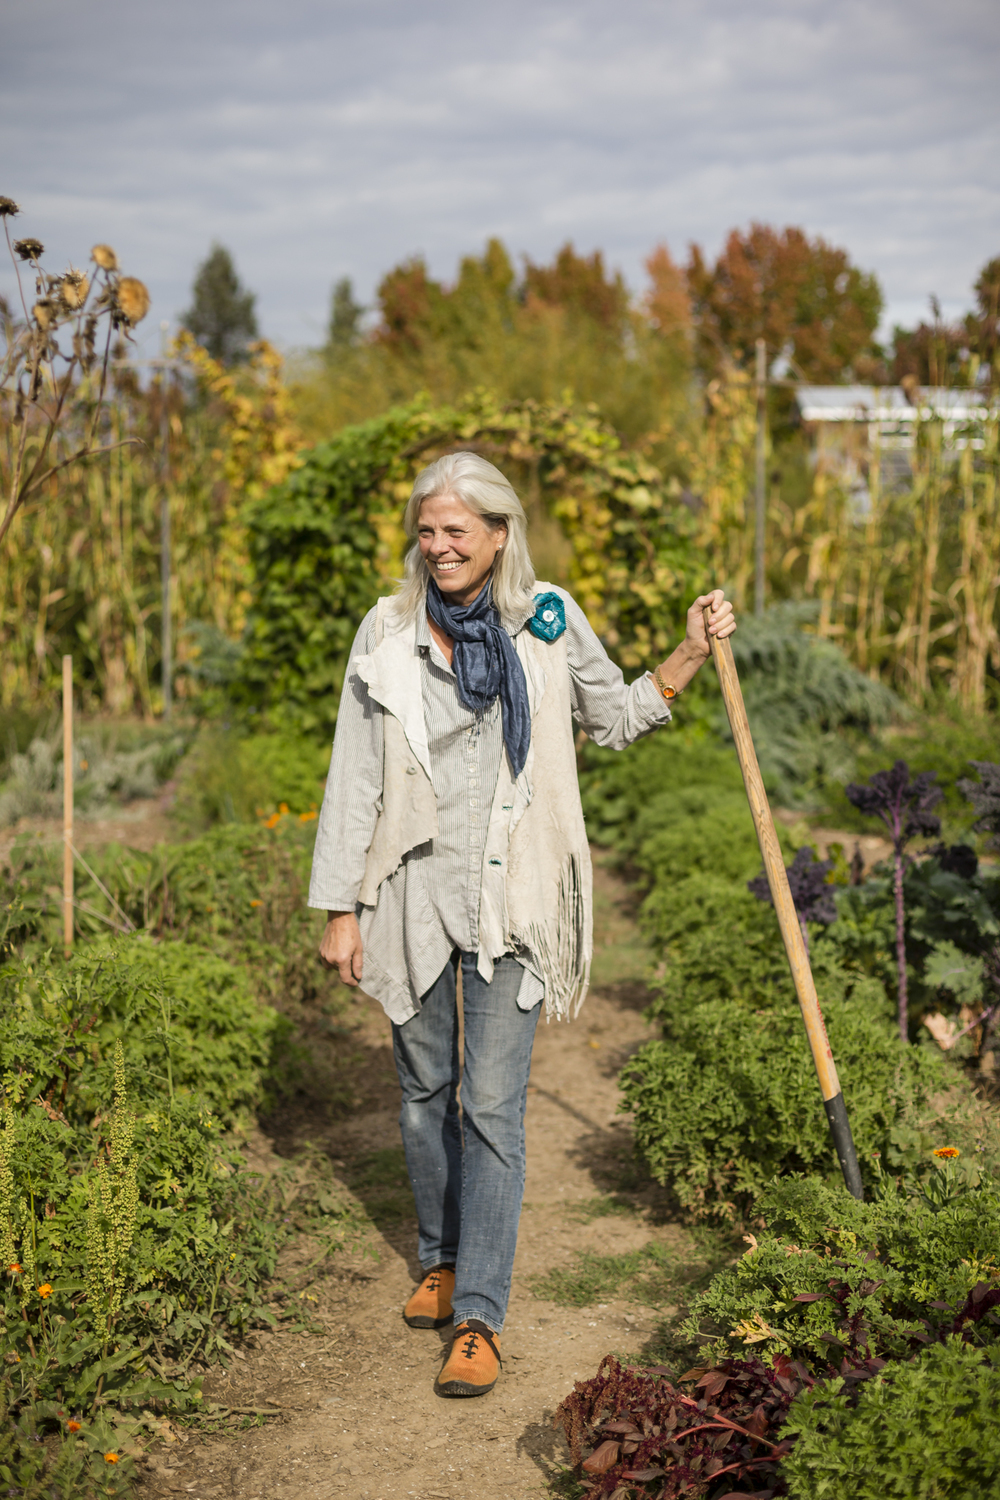 On November 5th, 2015 in Healdsburg, CA, Colleen McGlynn, walks through the gardens at the tasting room property of DaVero Farms & Winery which she owns with husband and QuickBooks creator Ridgely Evers.  DaVero is a biodynamic family farm which produces small lots of Italian wine and olive oil in the Dry Creek Valley of Sonoma County. Sonoma has become America's test kitchen, 1768-square miles chocked full of wineries, dairies, micro-distilleries, bakeries, restaurants, gardens, and orchards.